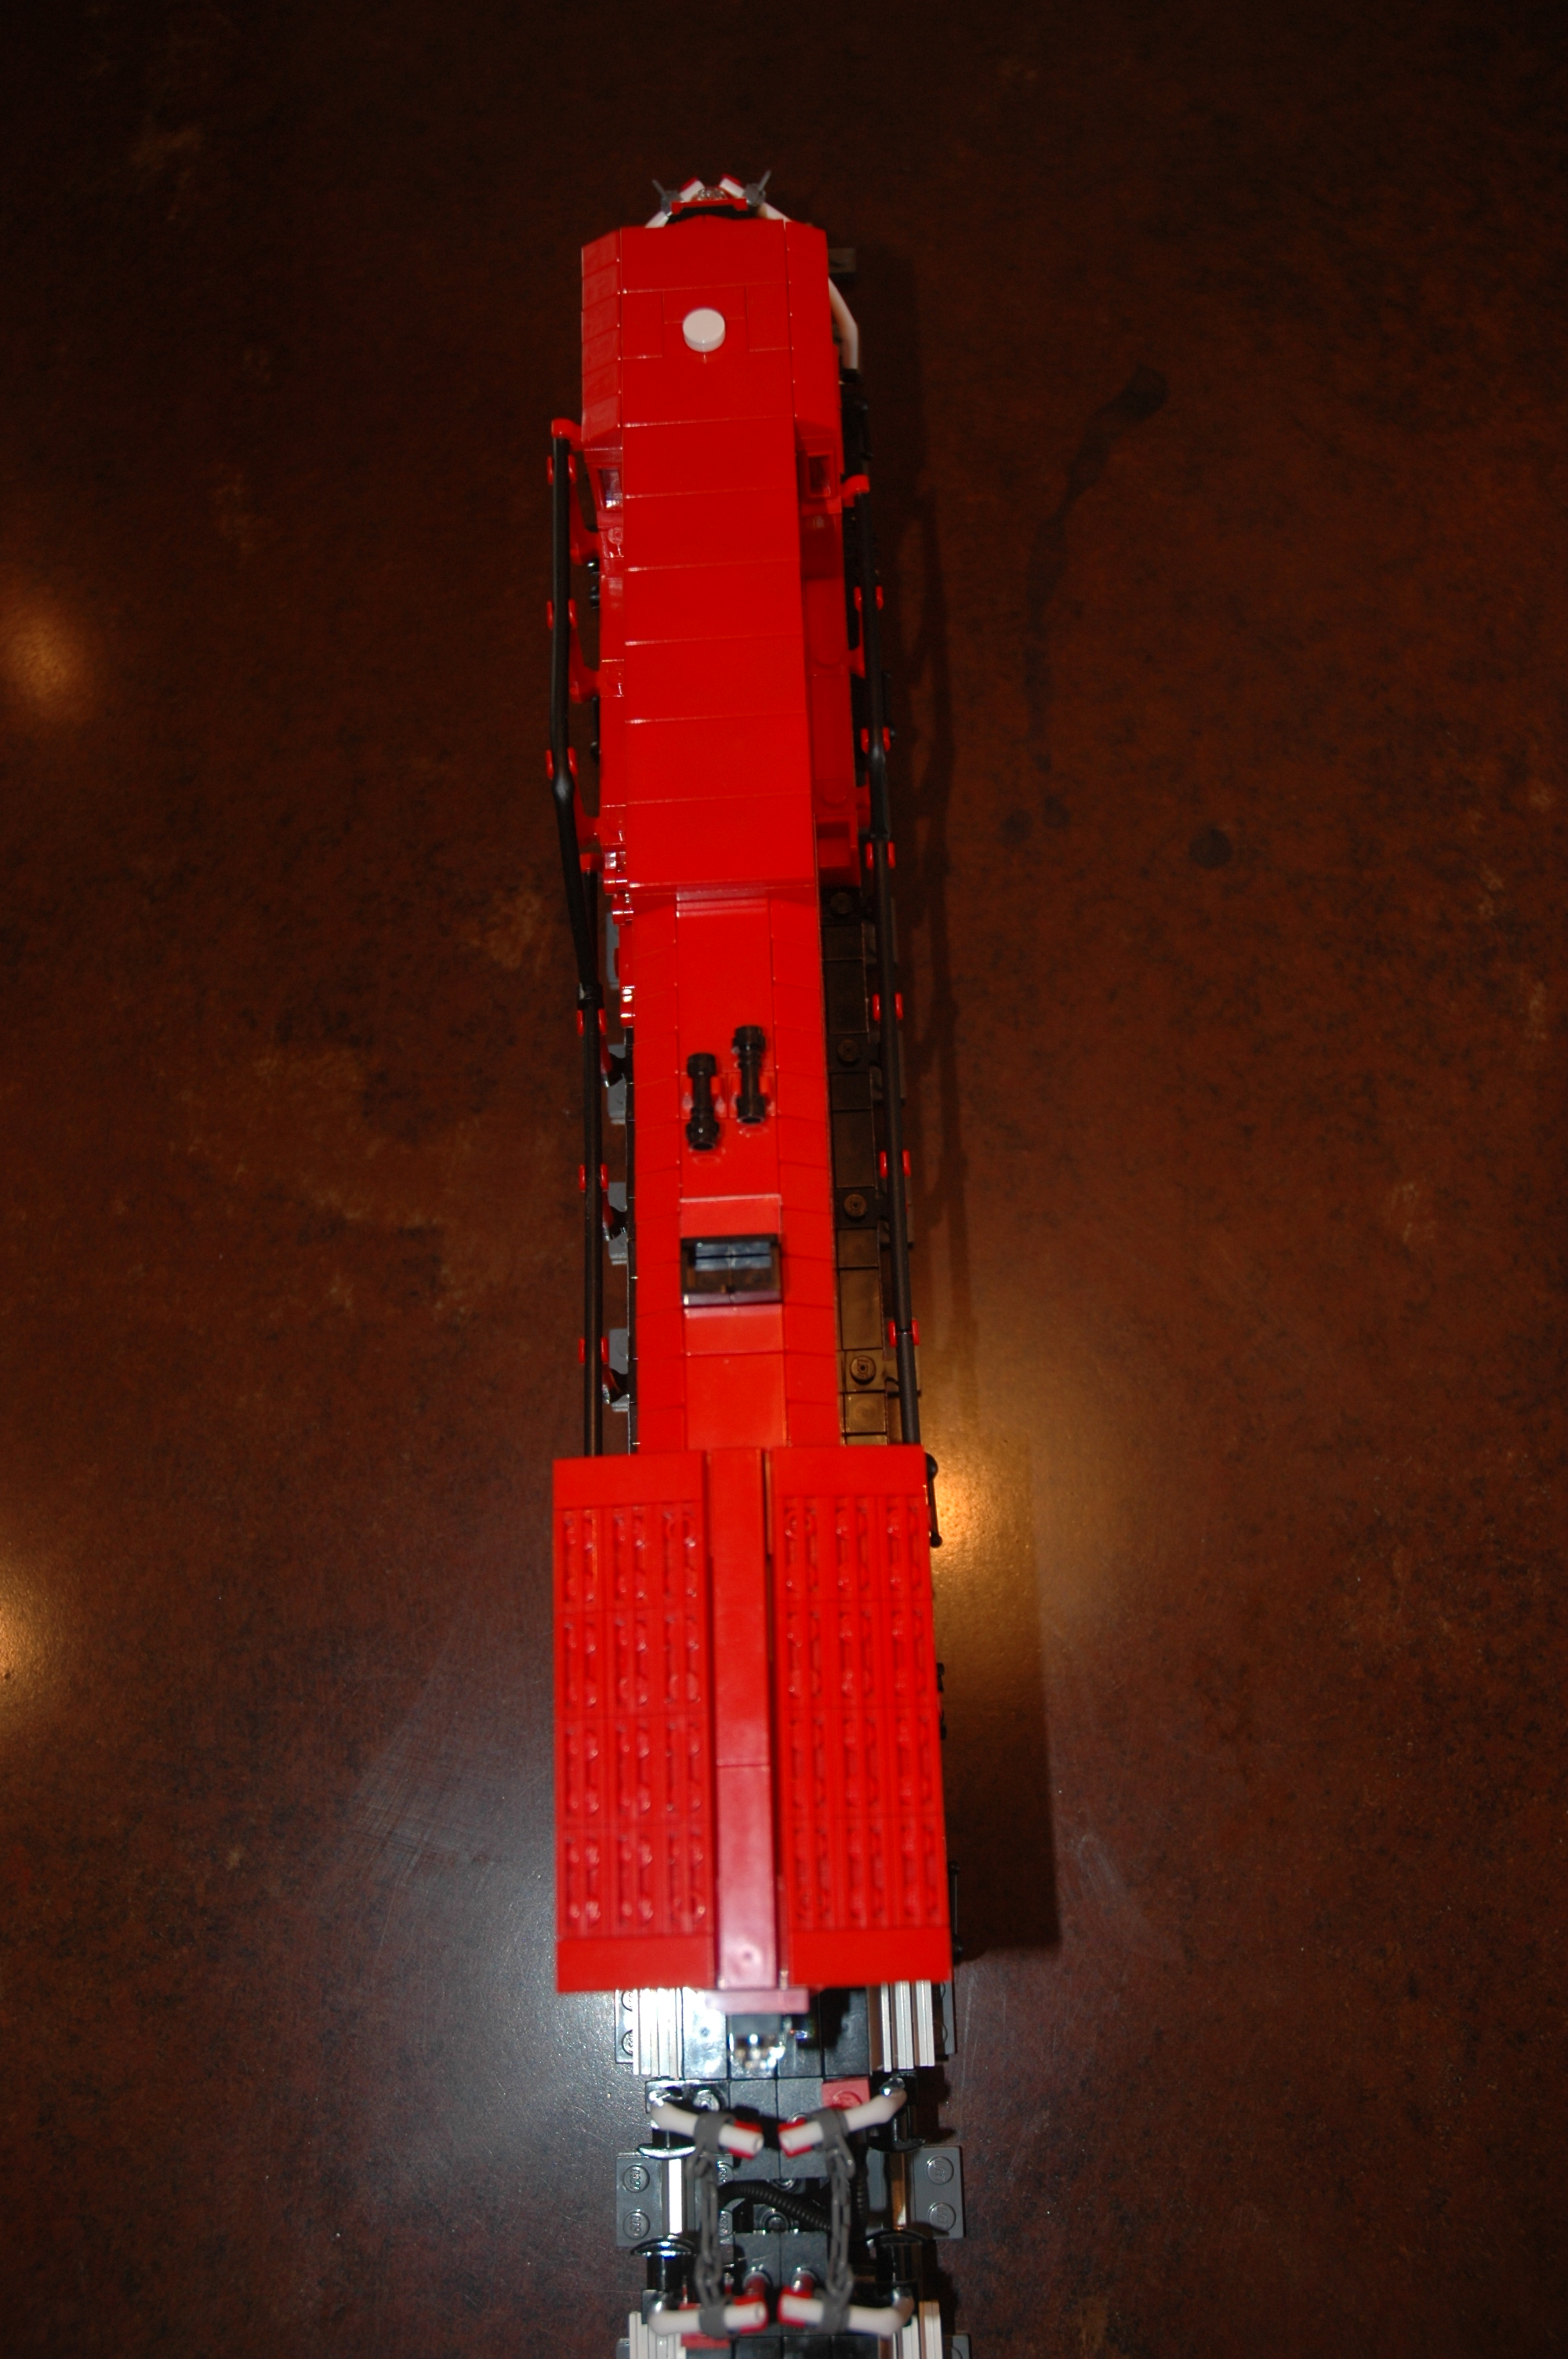 lego_cp_freight_engine_ac4400cw_top.jpg